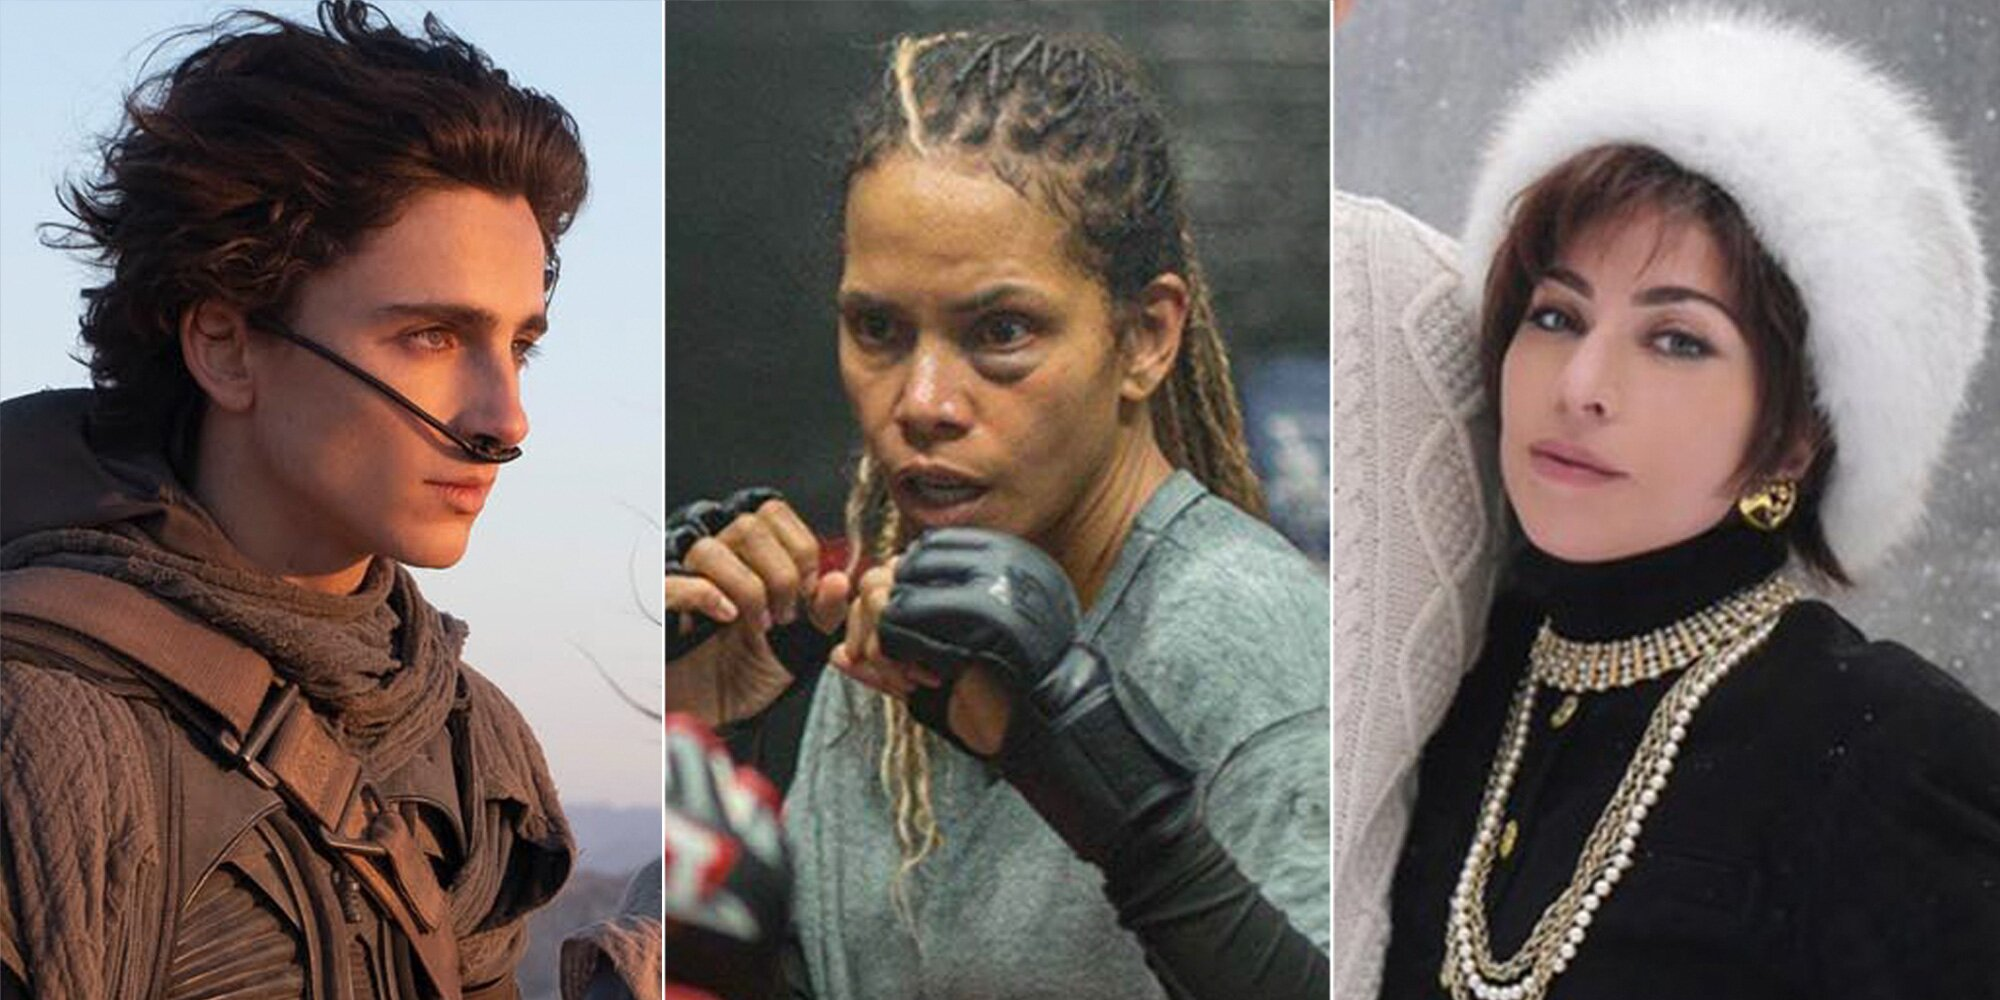 2022 Oscar predictions: Lady Gaga, Kristen Stewart, more contenders to look out for